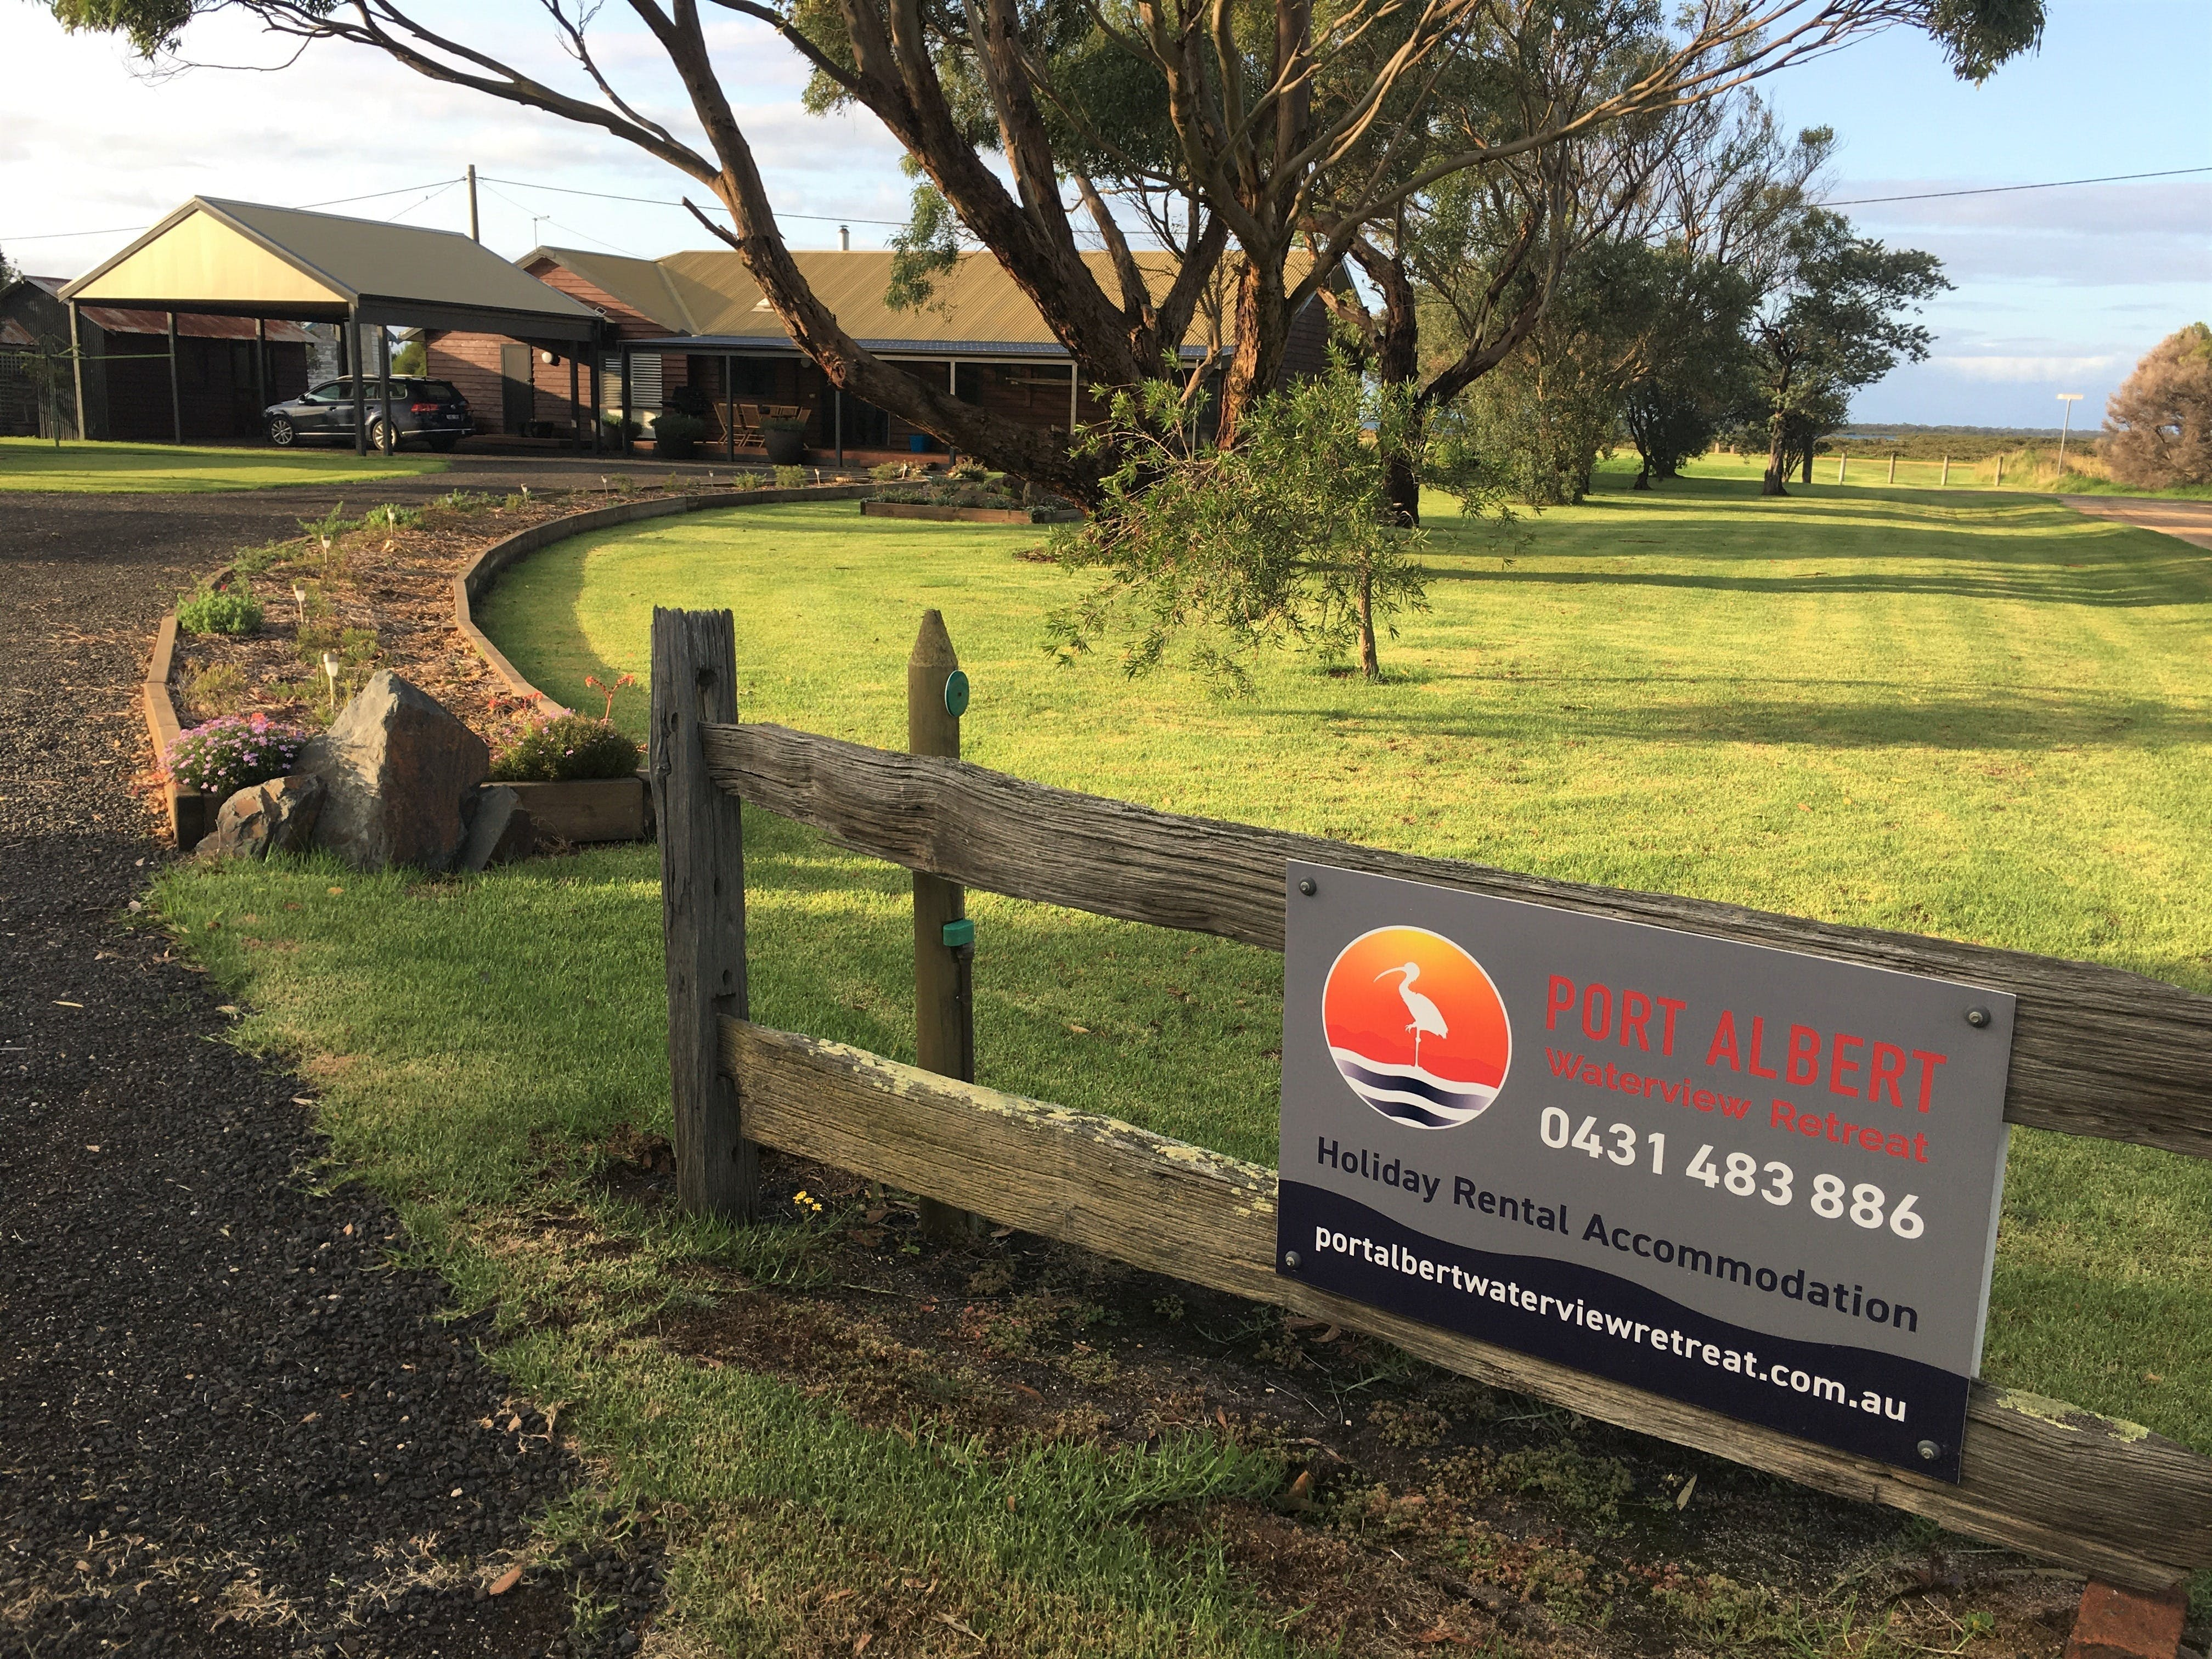 Port Albert Waterview Retreat - Accommodation Sydney